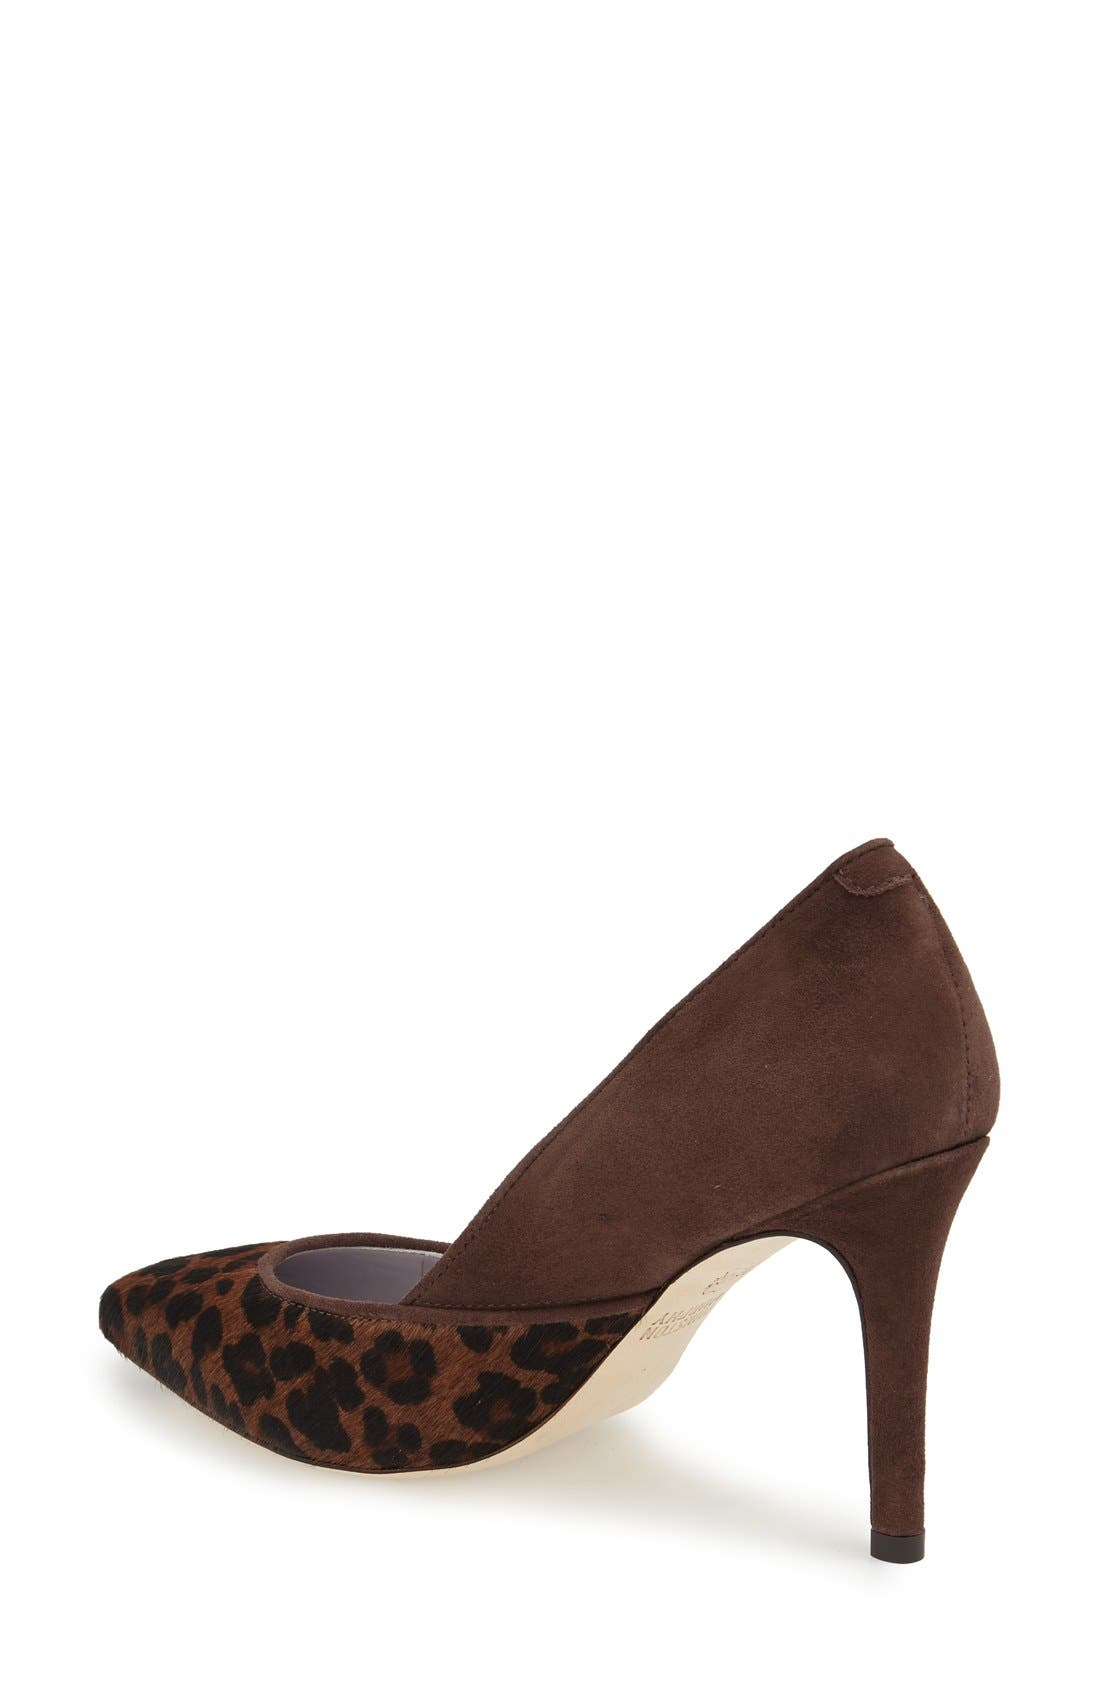 'Vanessa' Pointy Toe Leather Pump,                             Alternate thumbnail 29, color,